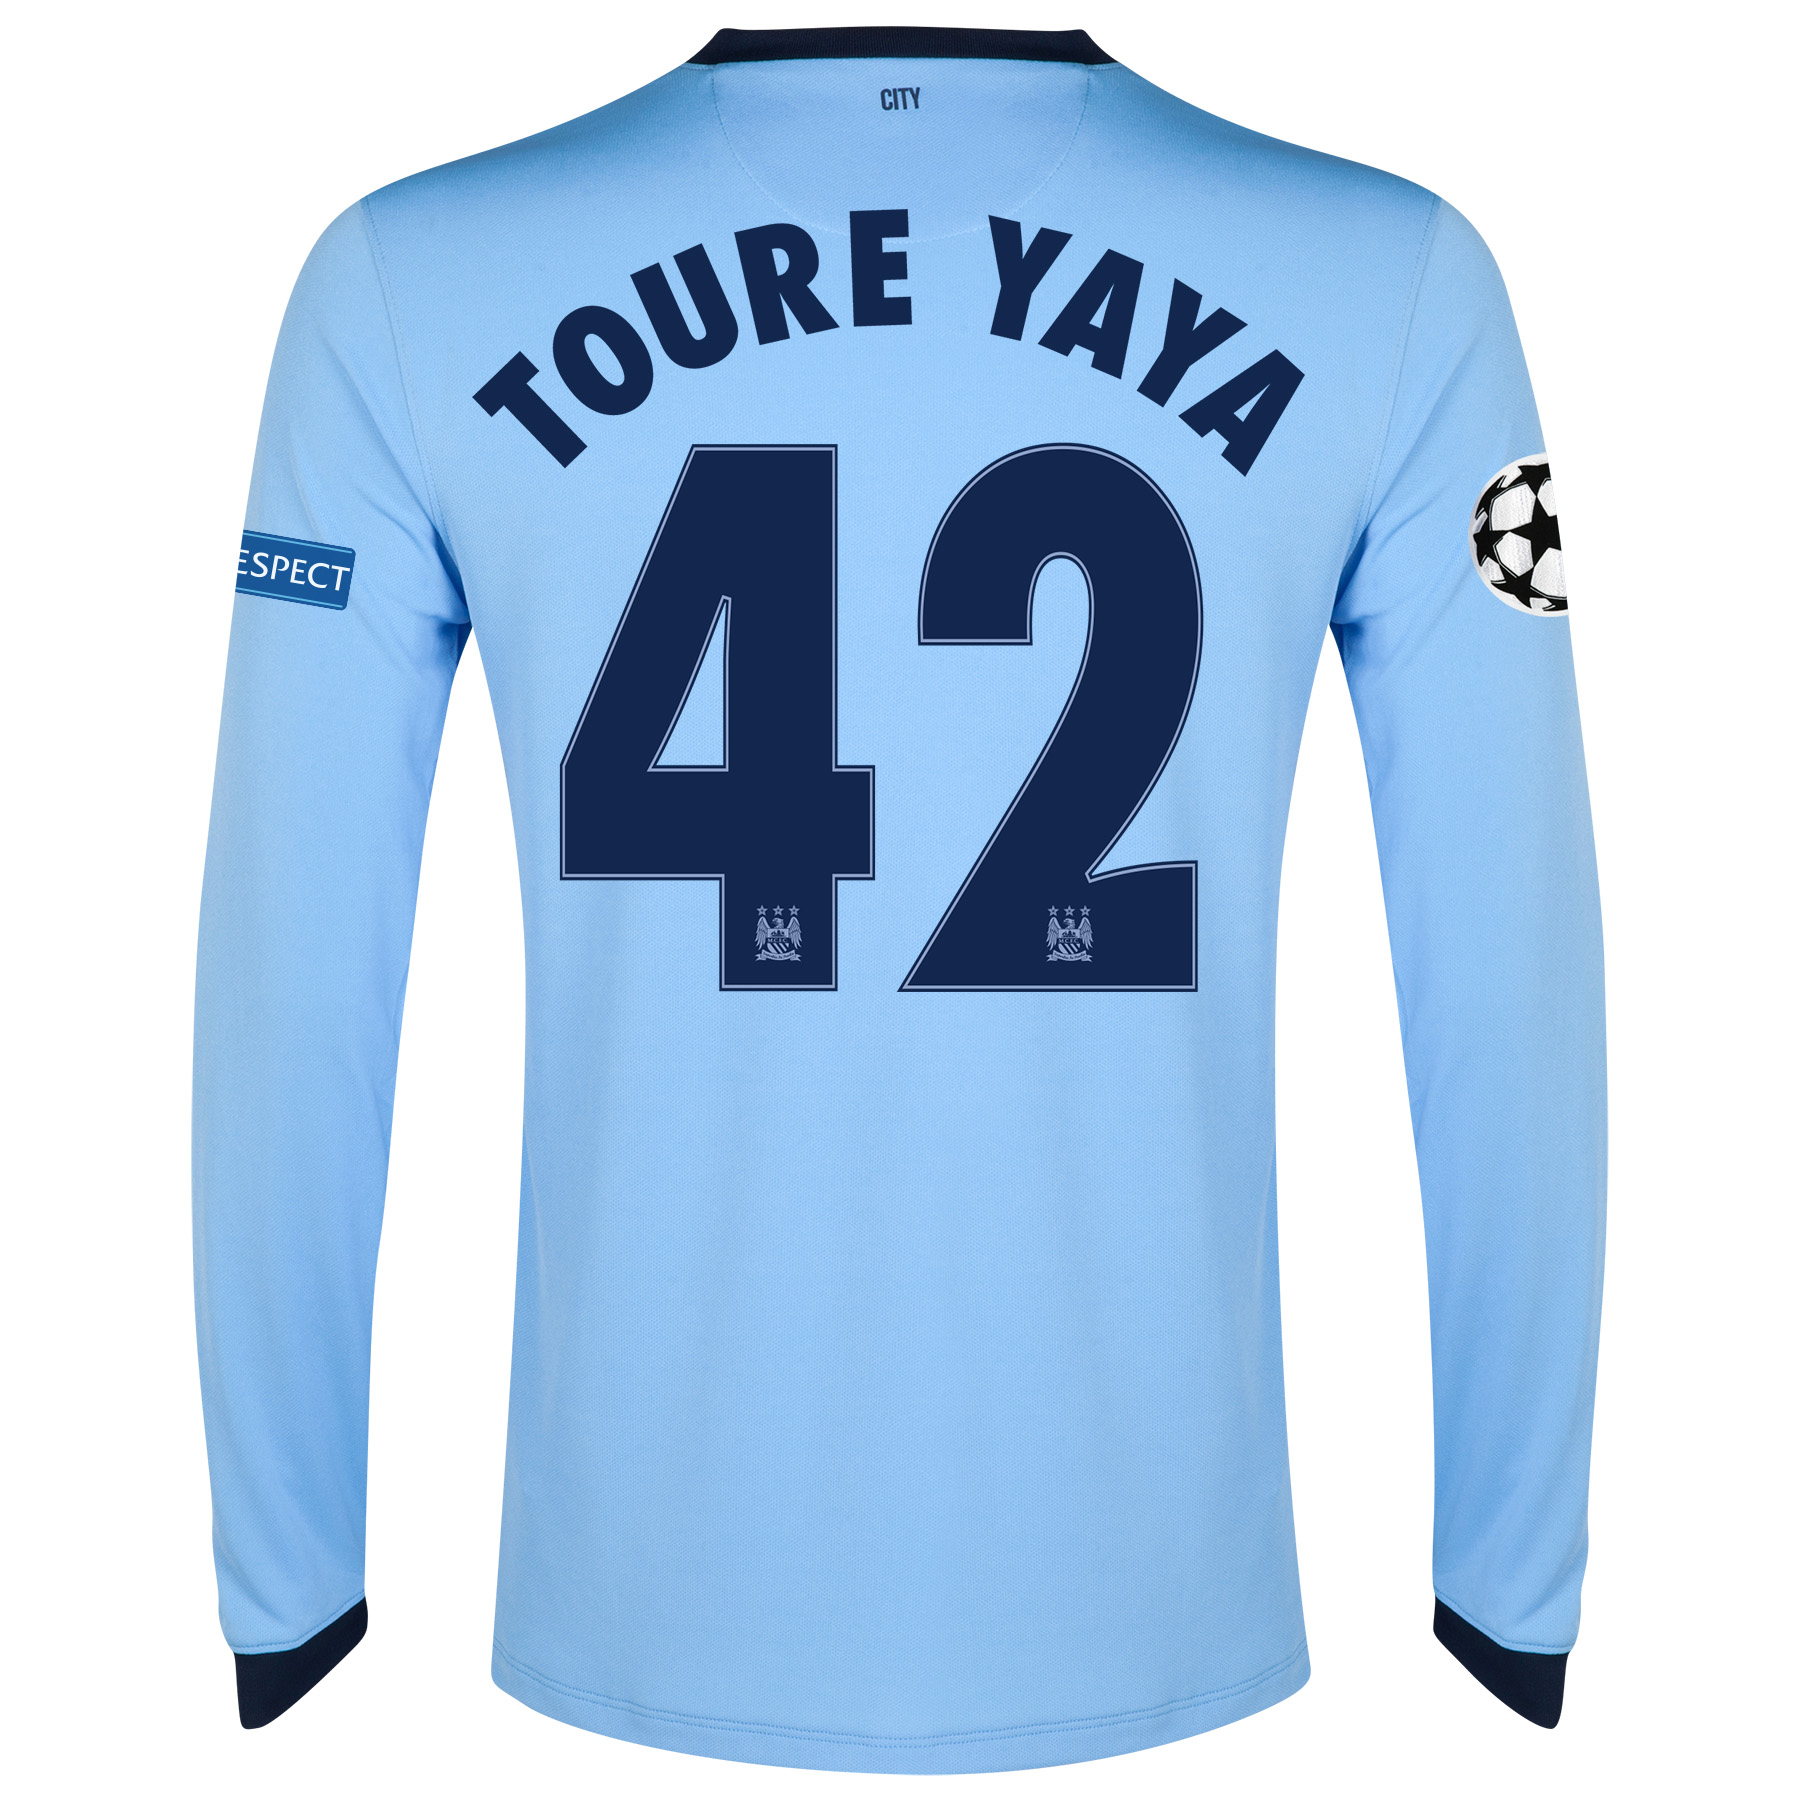 Manchester City UEFA Champions League Home Shirt 2014/15 - Long Sleeve Sky Blue with Toure Yaya 42 printing